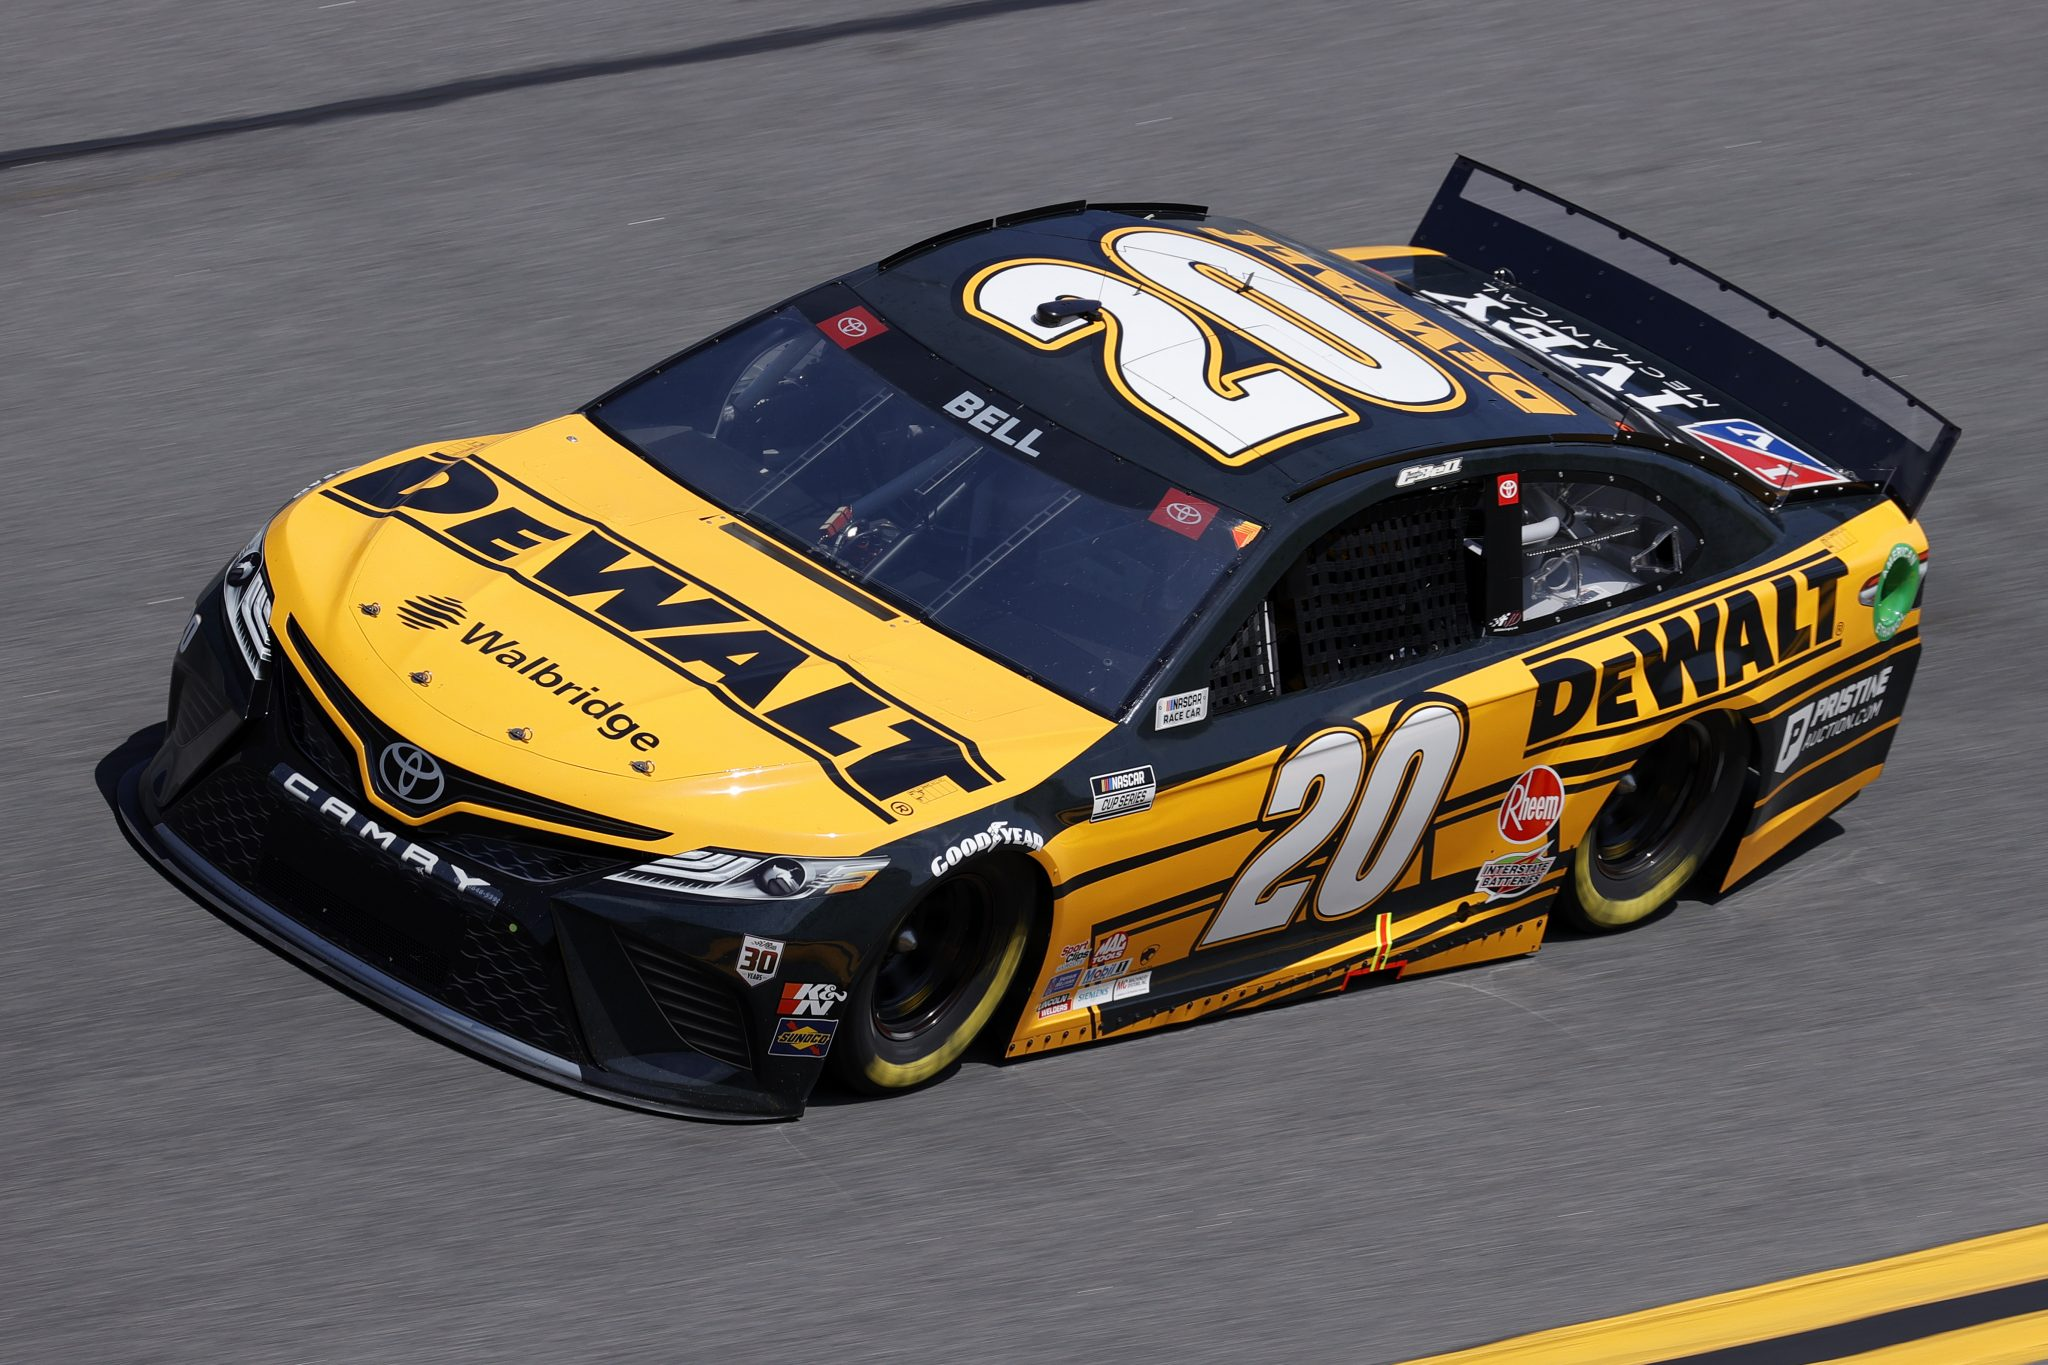 DAYTONA BEACH, FLORIDA - FEBRUARY 10: Christopher Bell, driver of the #20 DEWALT Toyota, drives during practice for the NASCAR Cup Series 63rd Annual Daytona 500 at Daytona International Speedway on February 10, 2021 in Daytona Beach, Florida. (Photo by Jared C. Tilton/Getty Images) | Getty Images